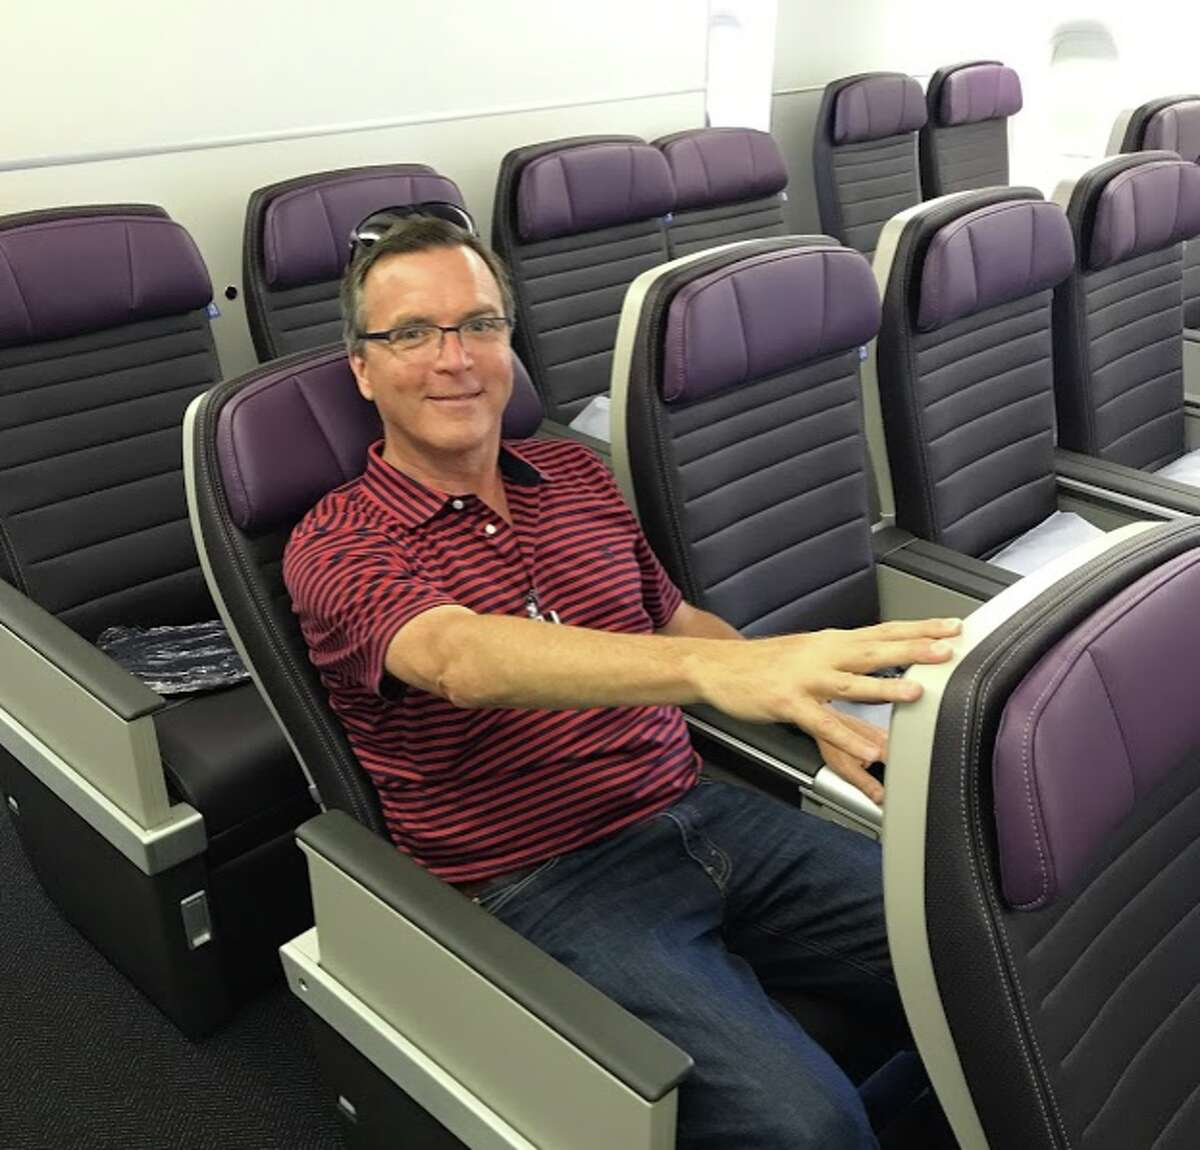 United Airlines' new Premium Plus seat on a Boeing 777-200ER- fits my 6 foot frame just fine.